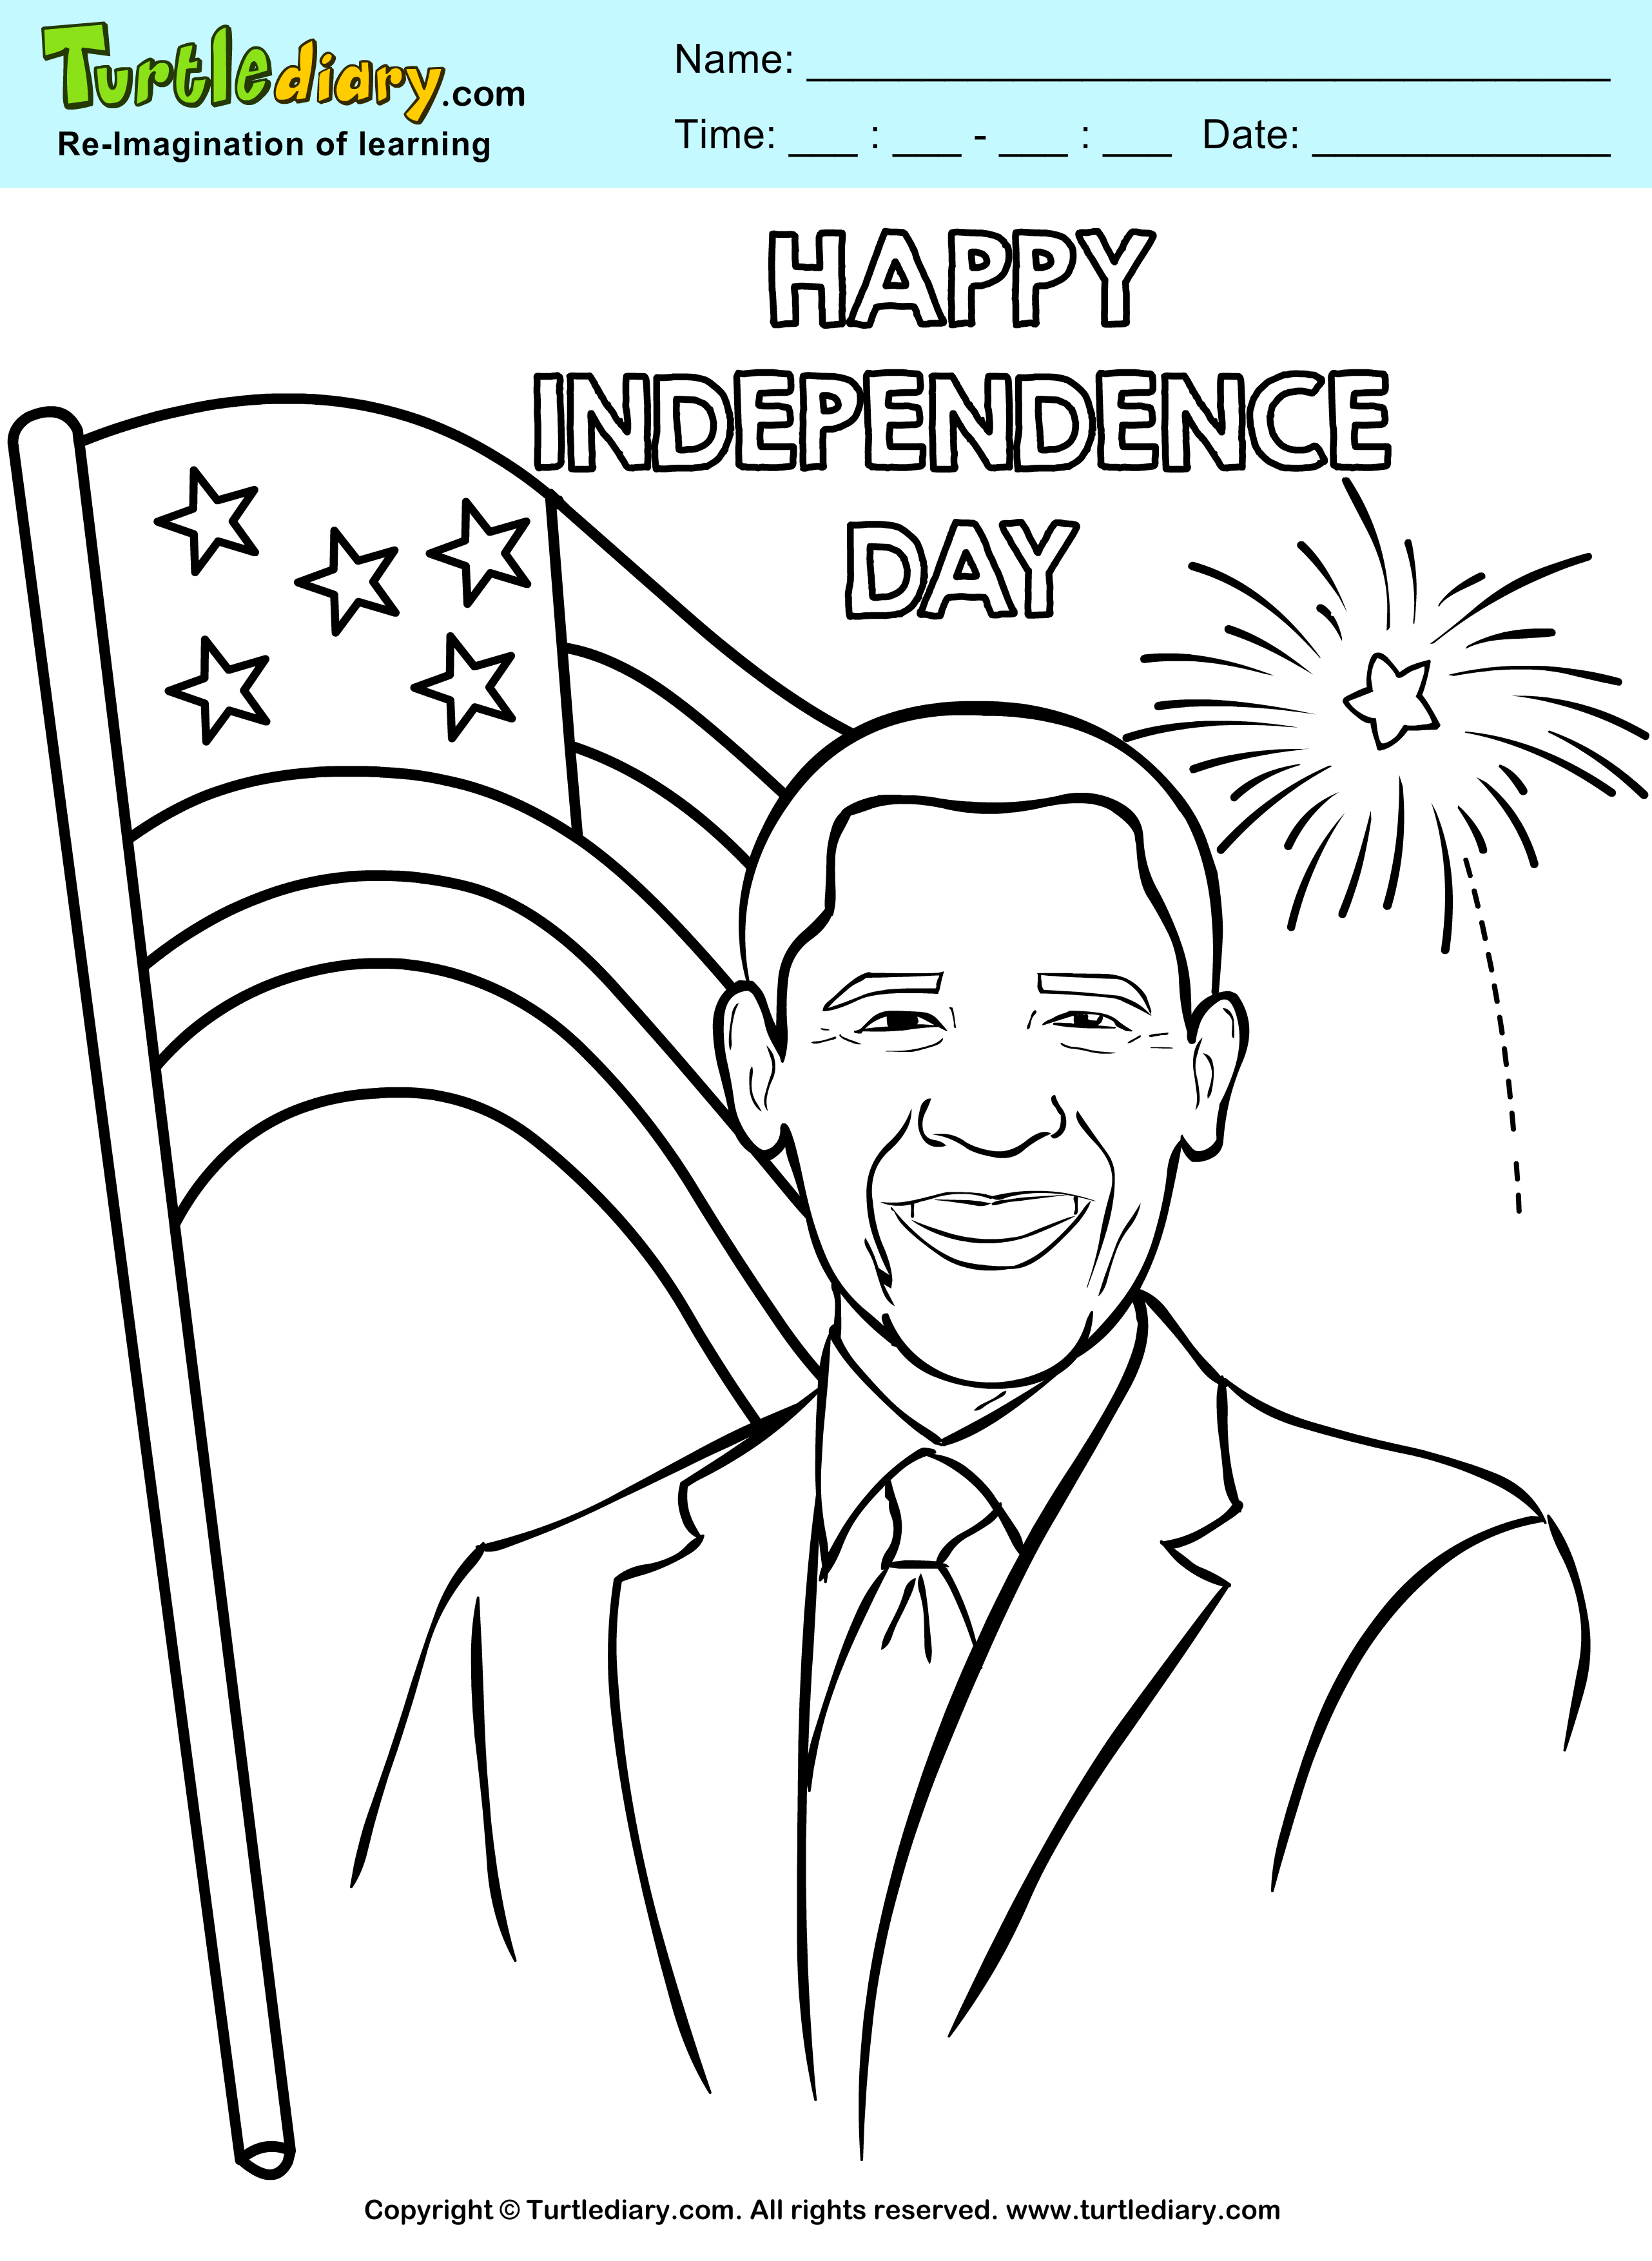 Happy Independence Day Coloring